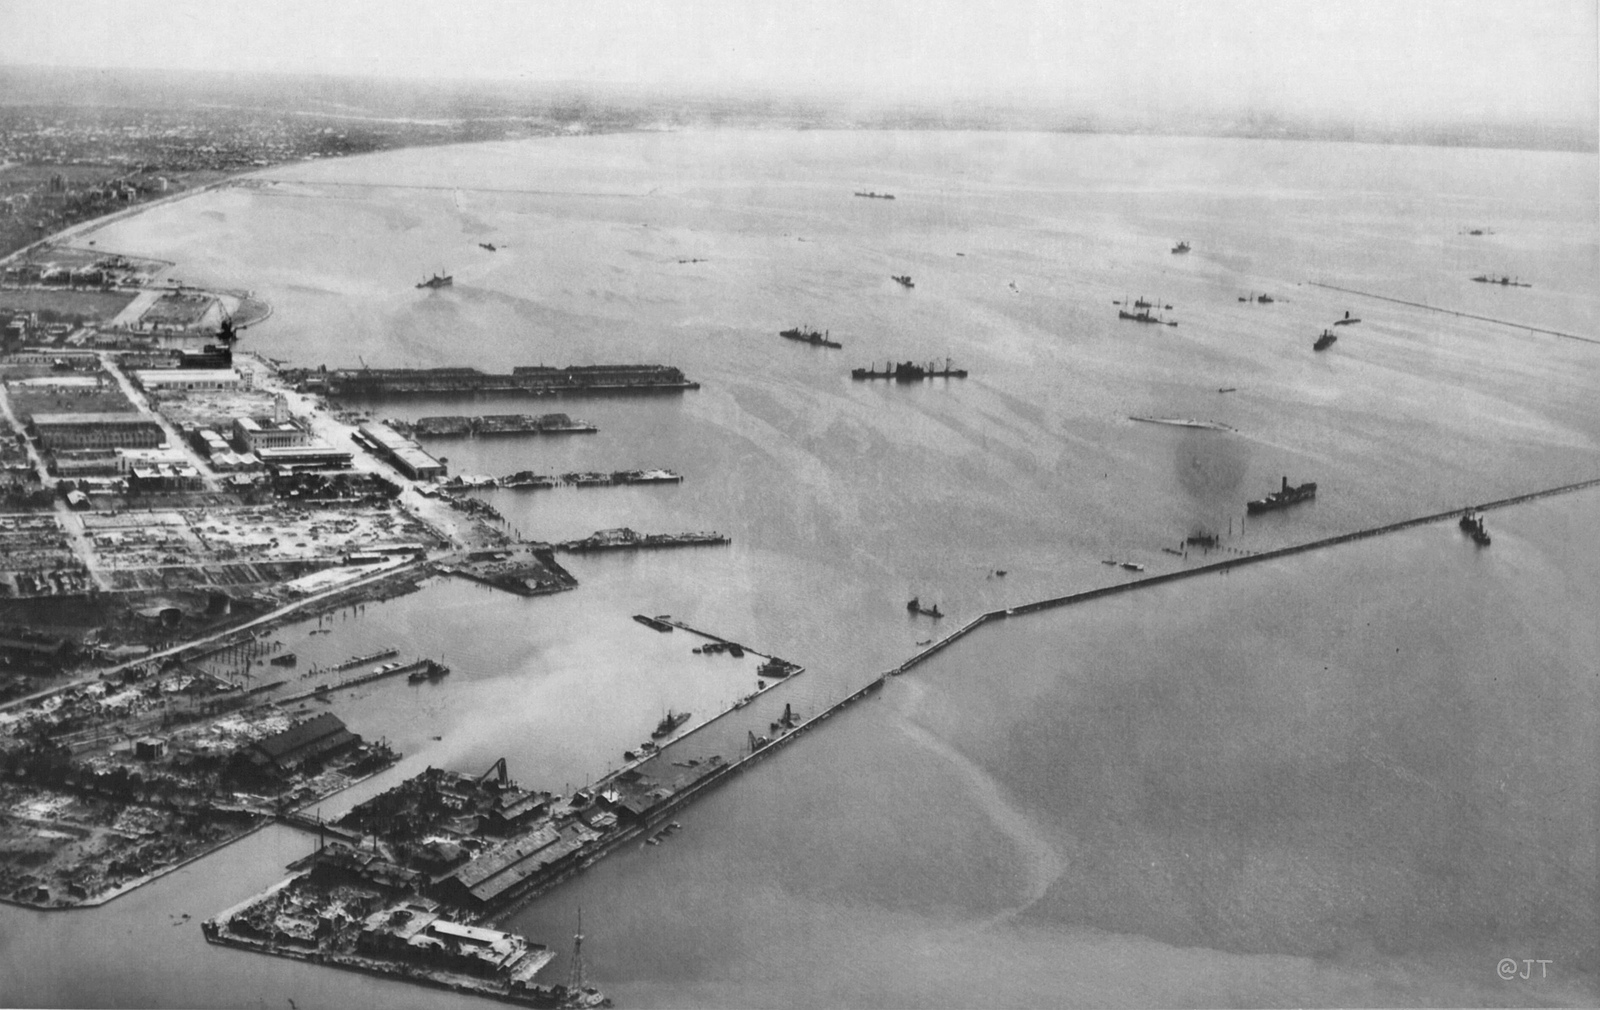 Manila Bay in February 1945 (US National Archives)